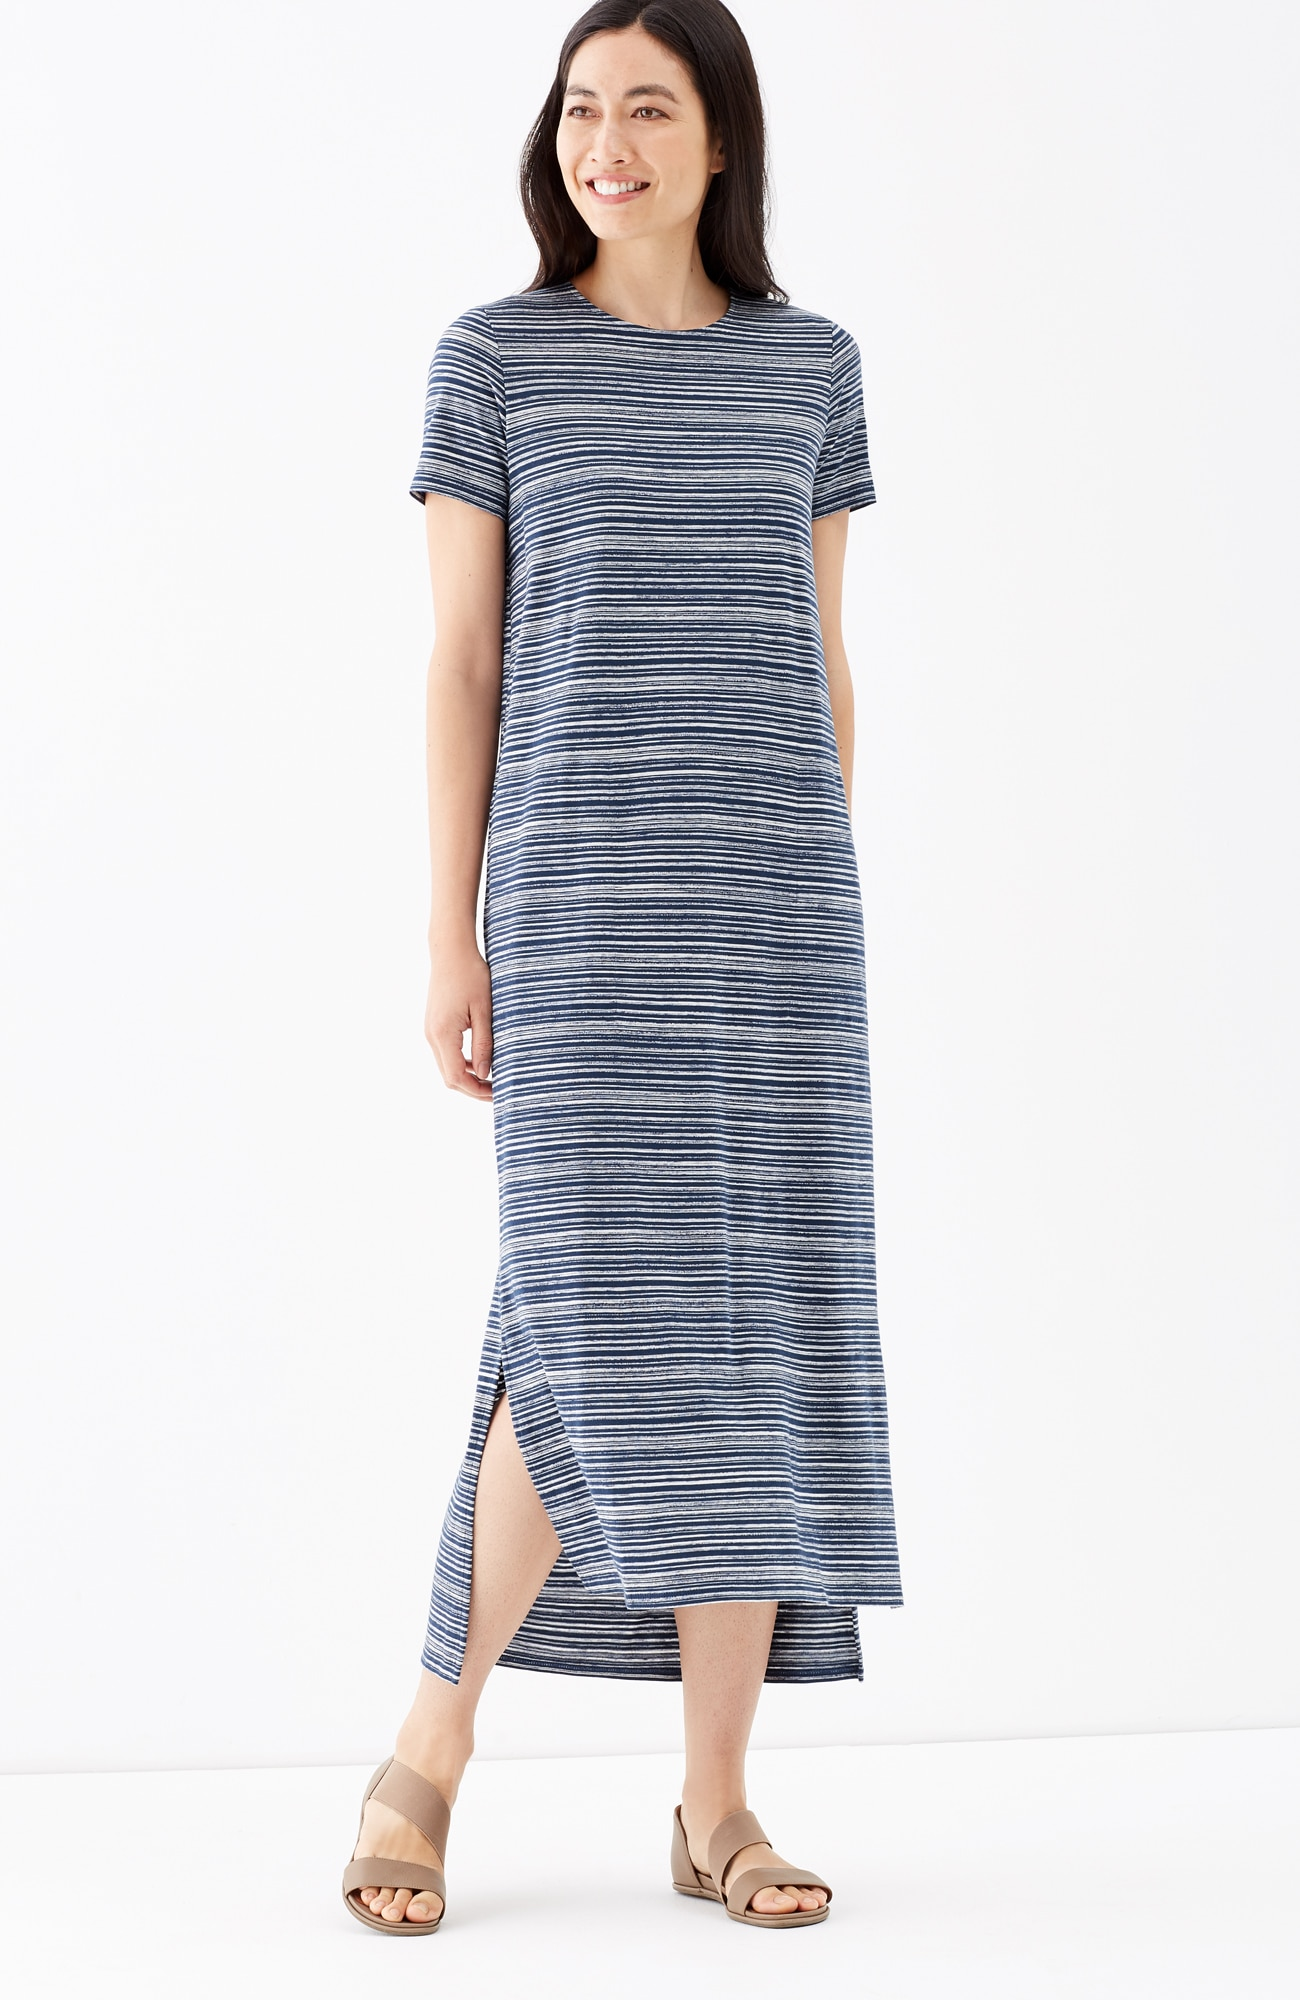 Pure Jill crew-neck dress